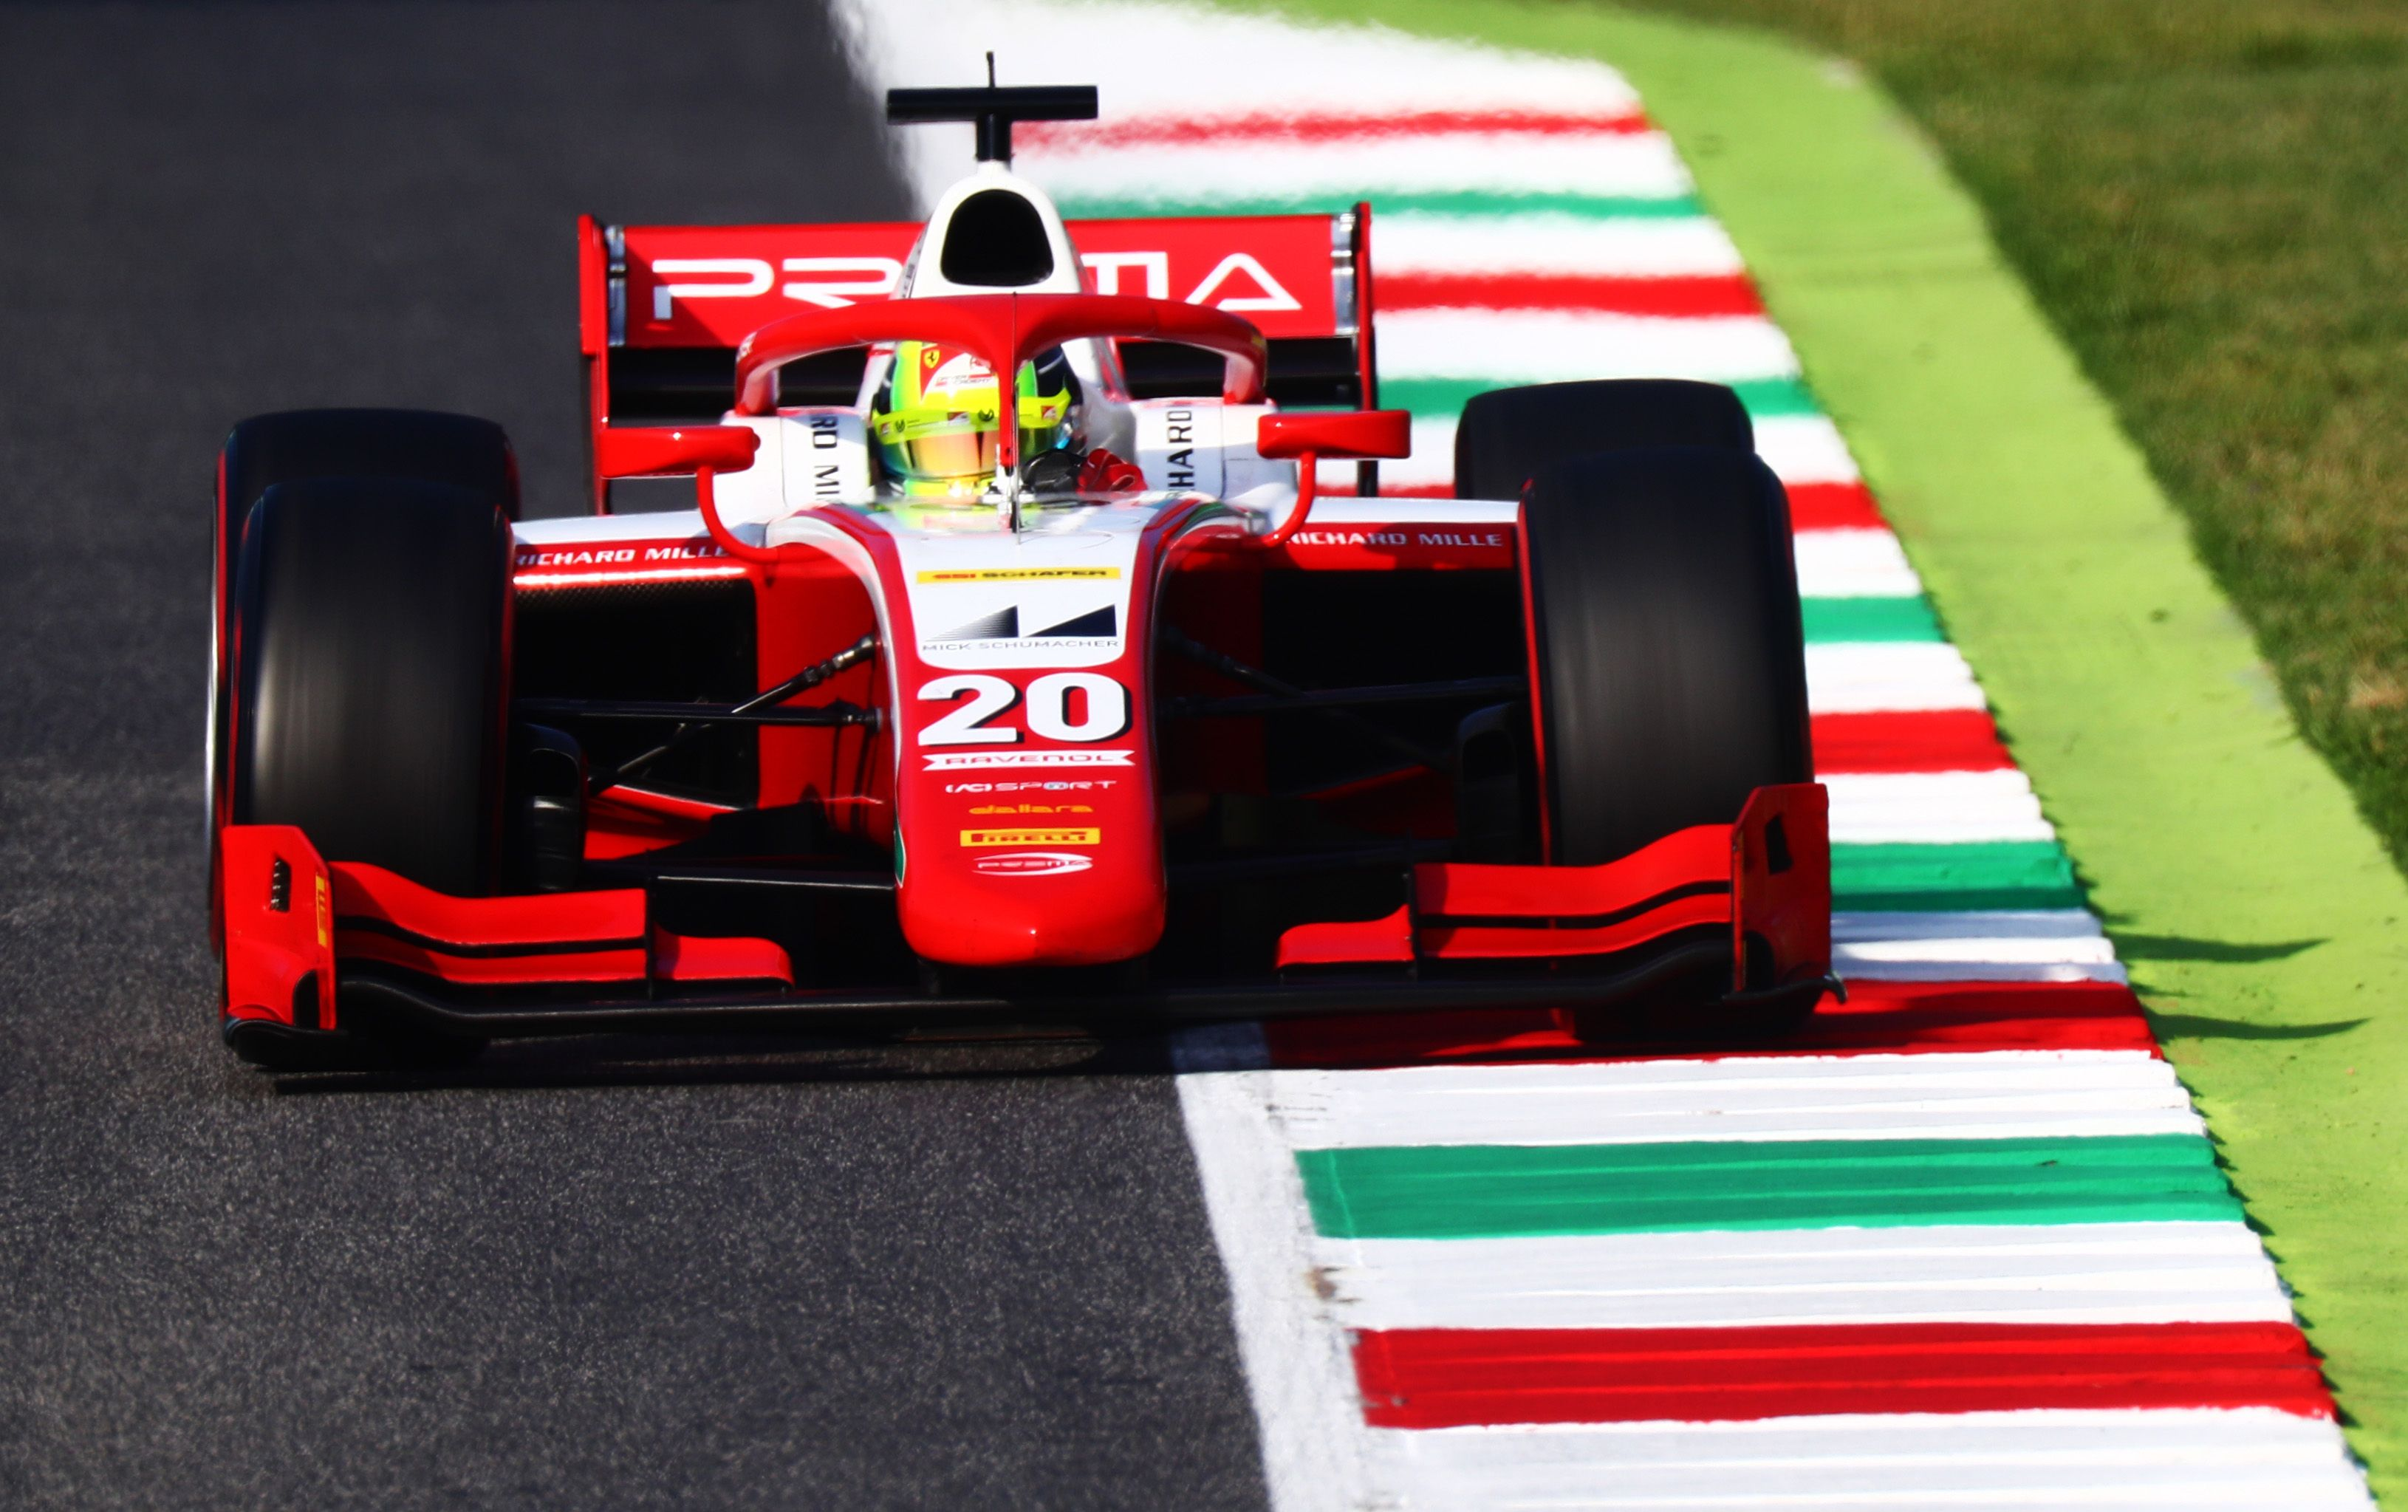 Mick Schumacher Emerges As Strong Candidate For Haas F1 Seat